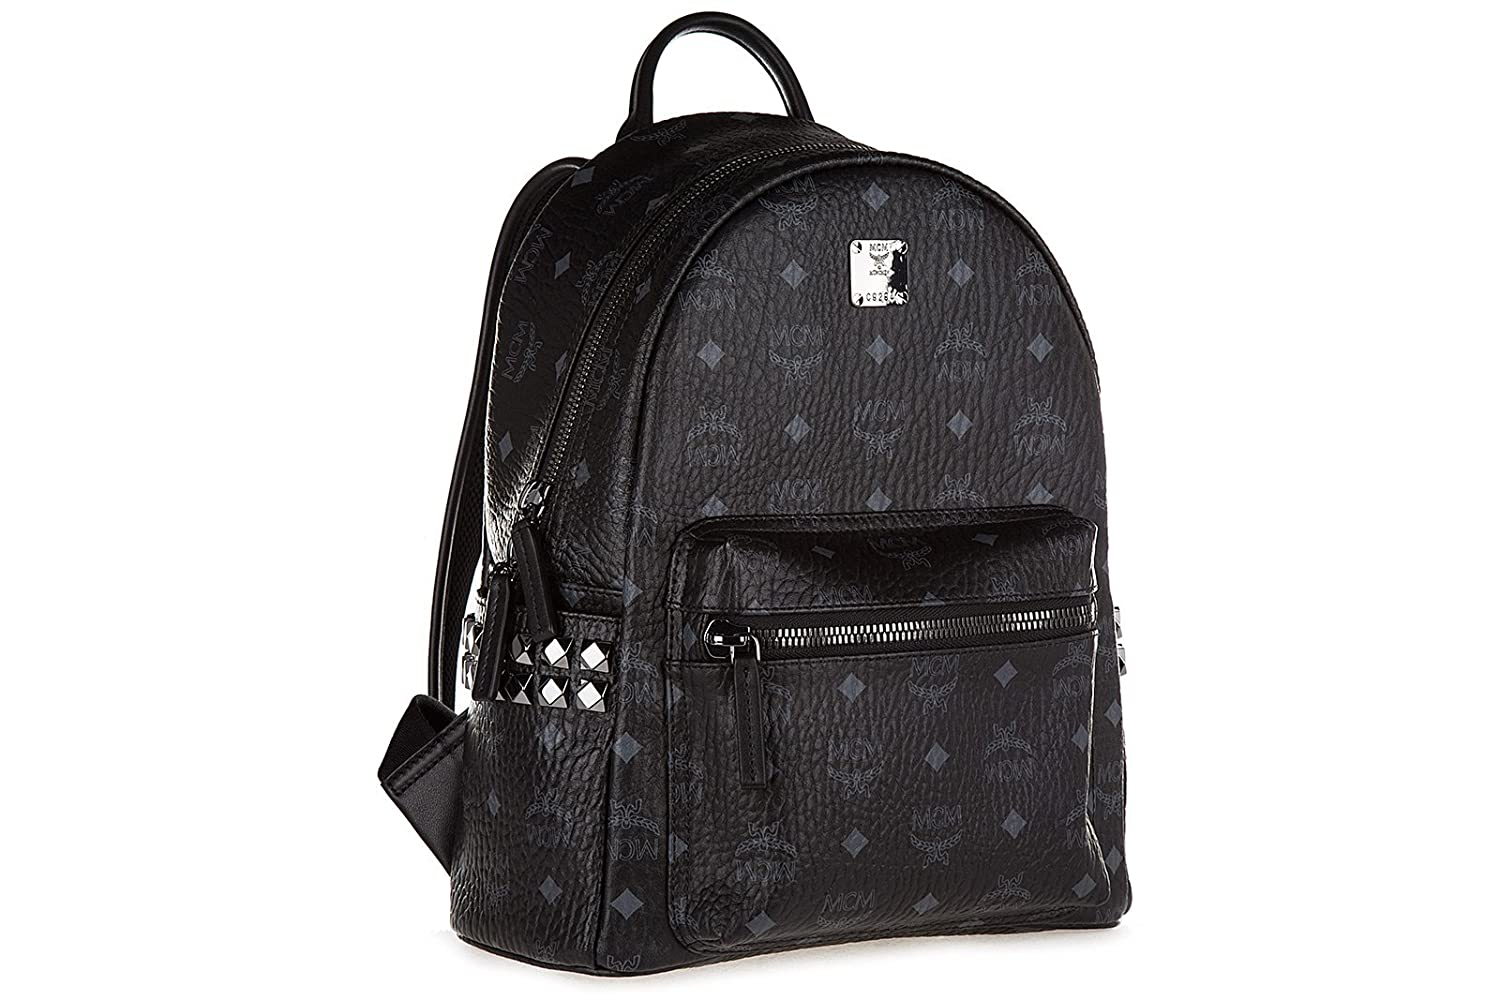 amazon com mcm women s small backpack black one size casual rh amazon com mcm backpack pre owned mcm backpack poshmark